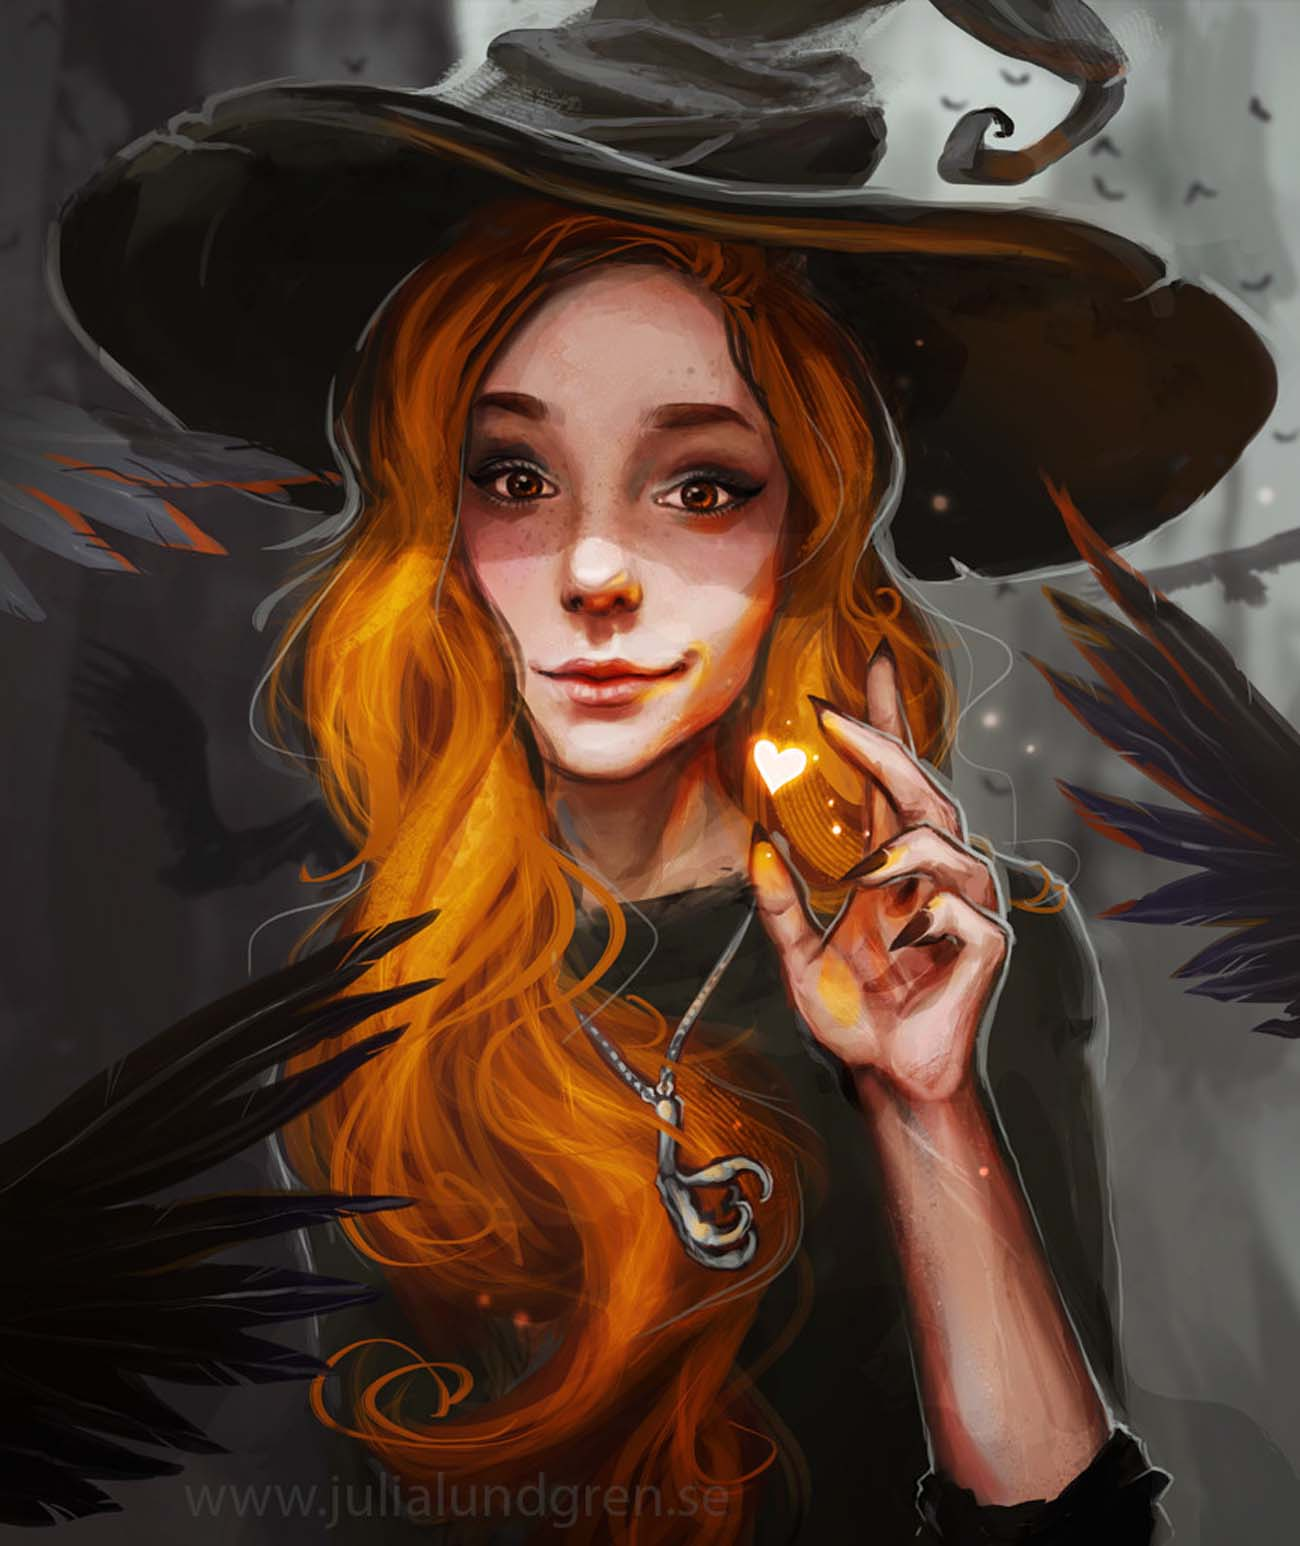 Julia Lundgren | Paintable.cc 25 Spooky Halloween Digital Paintings to Give You Nightmares! #digitalpainting #digitalart #halloween